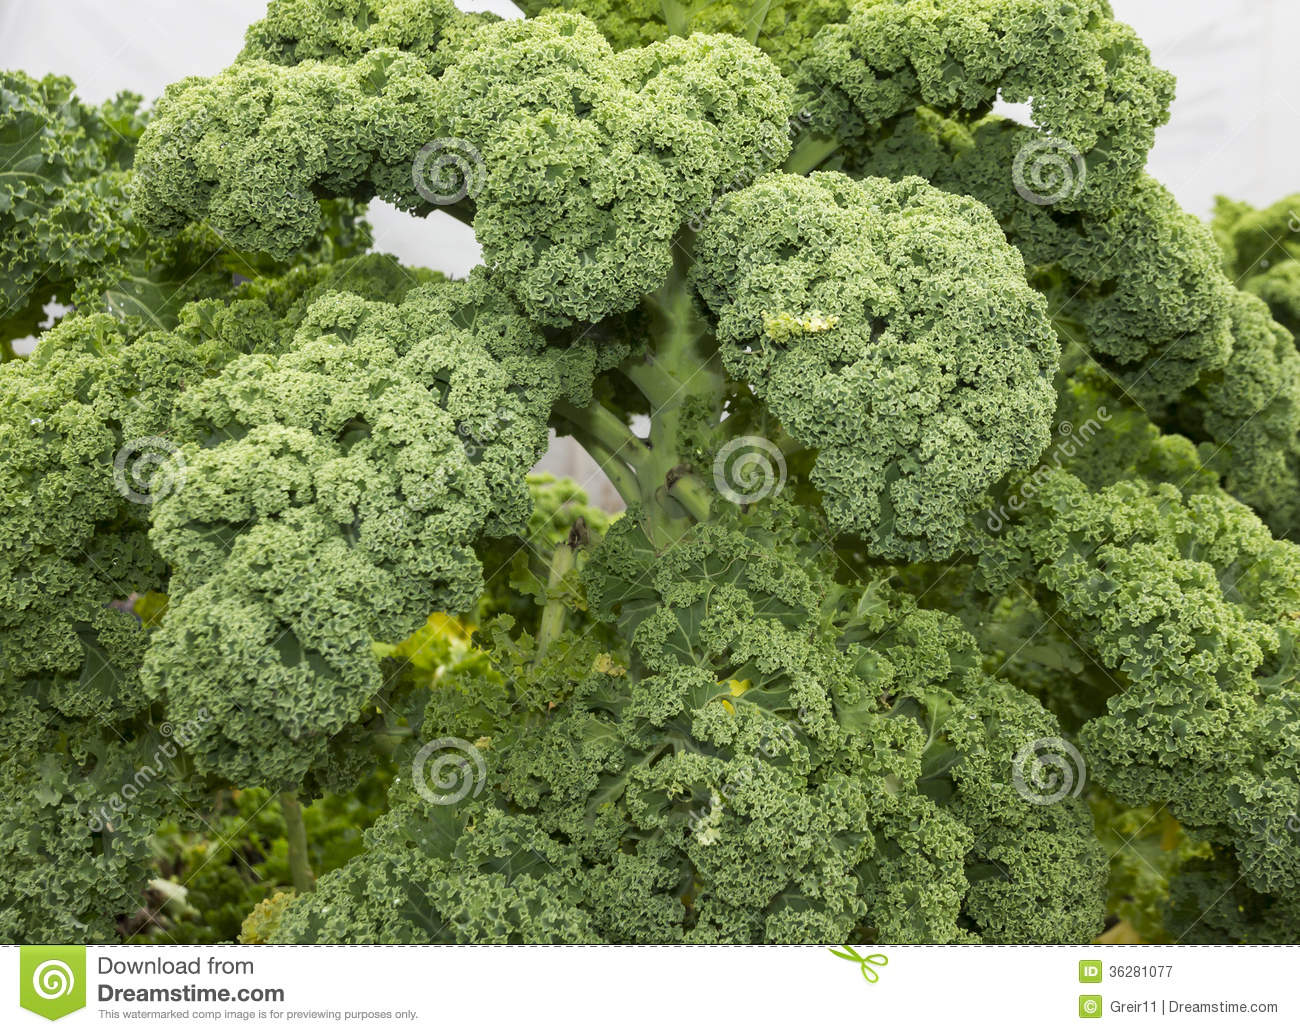 how to grow kale in florida